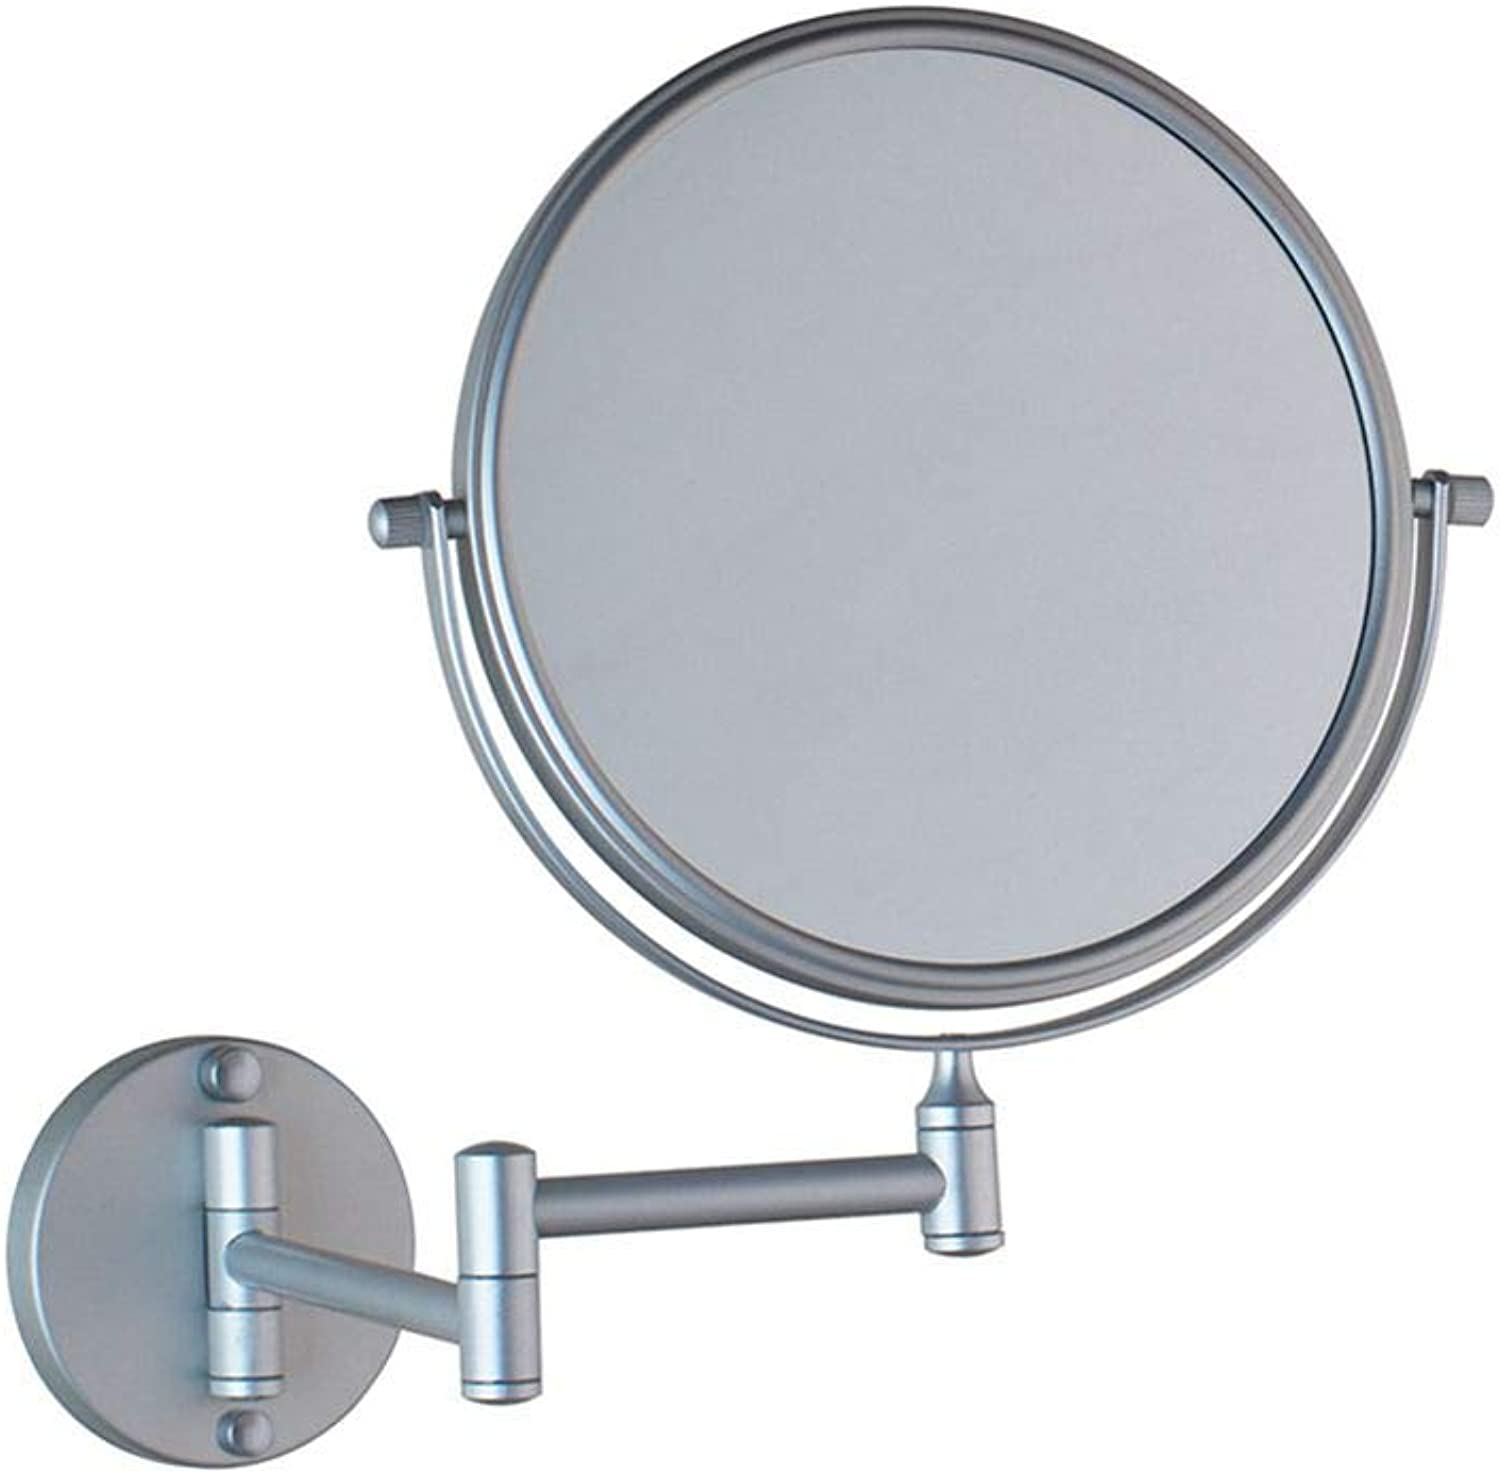 LUDSUY Makeup Mirrors Wall Mounted Extending Folding One Side Mirror Adjustable Bath&Toilet MirrorBathroom Accessories